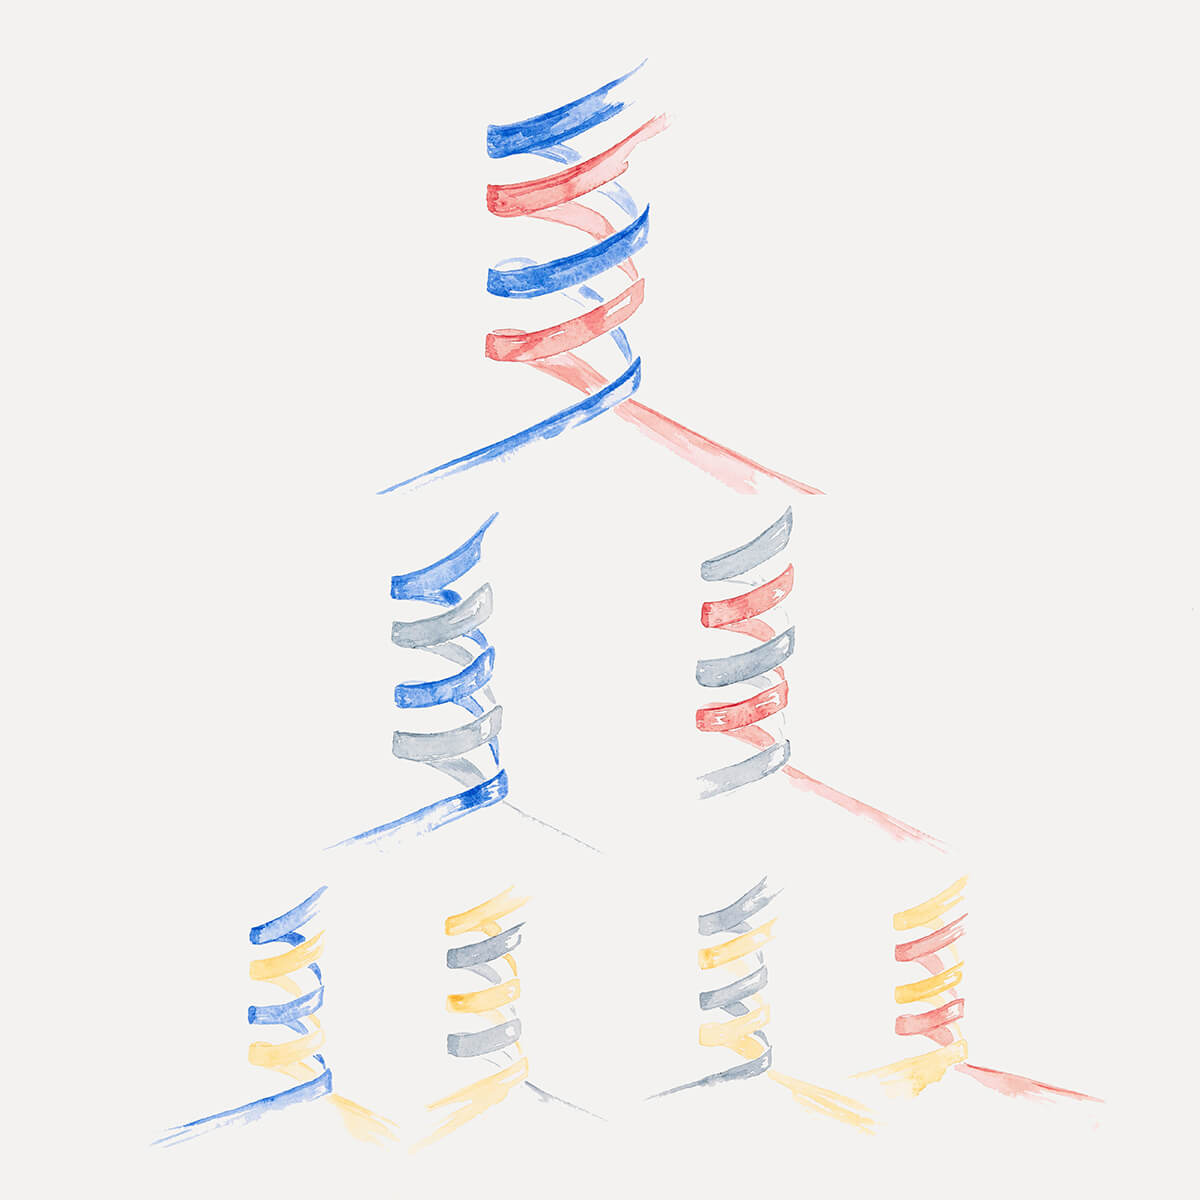 Illustration of DNA Replication